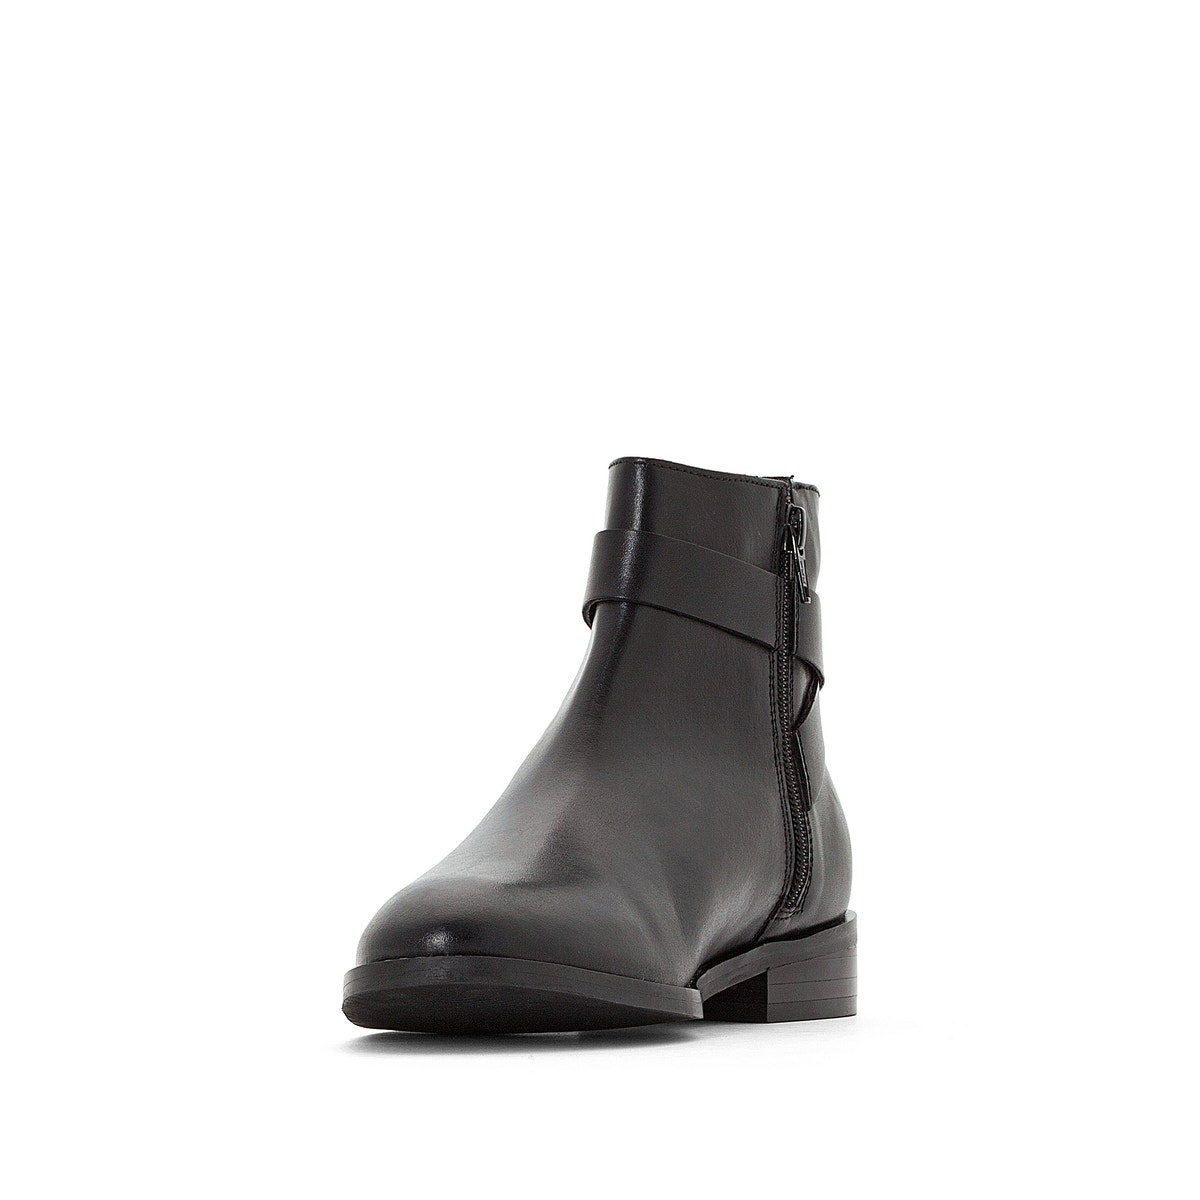 La Redoute Collections Collections Collections Womens Leather Ankle Boots With Buckle 6ea85f